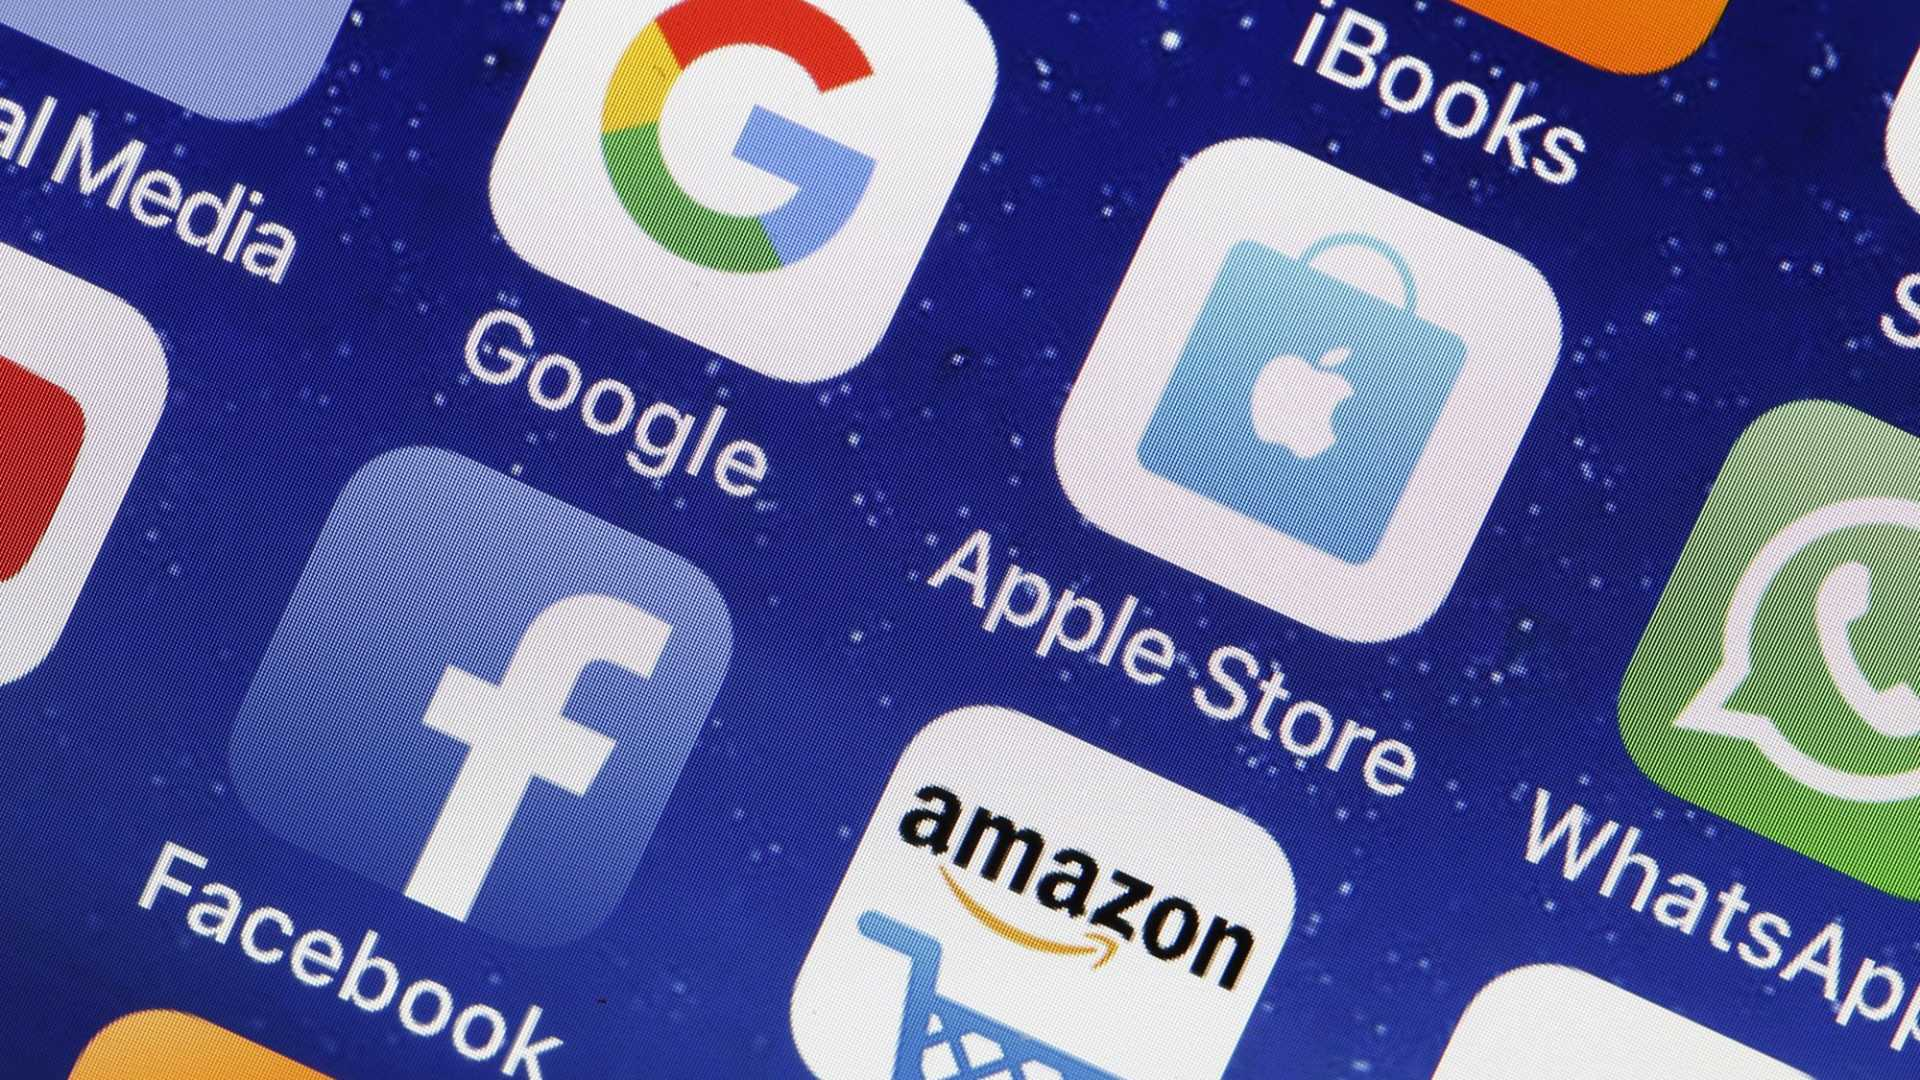 Amazon and Google Just Got Some Very Distressing News (and It's Pretty Bad for Facebook too)